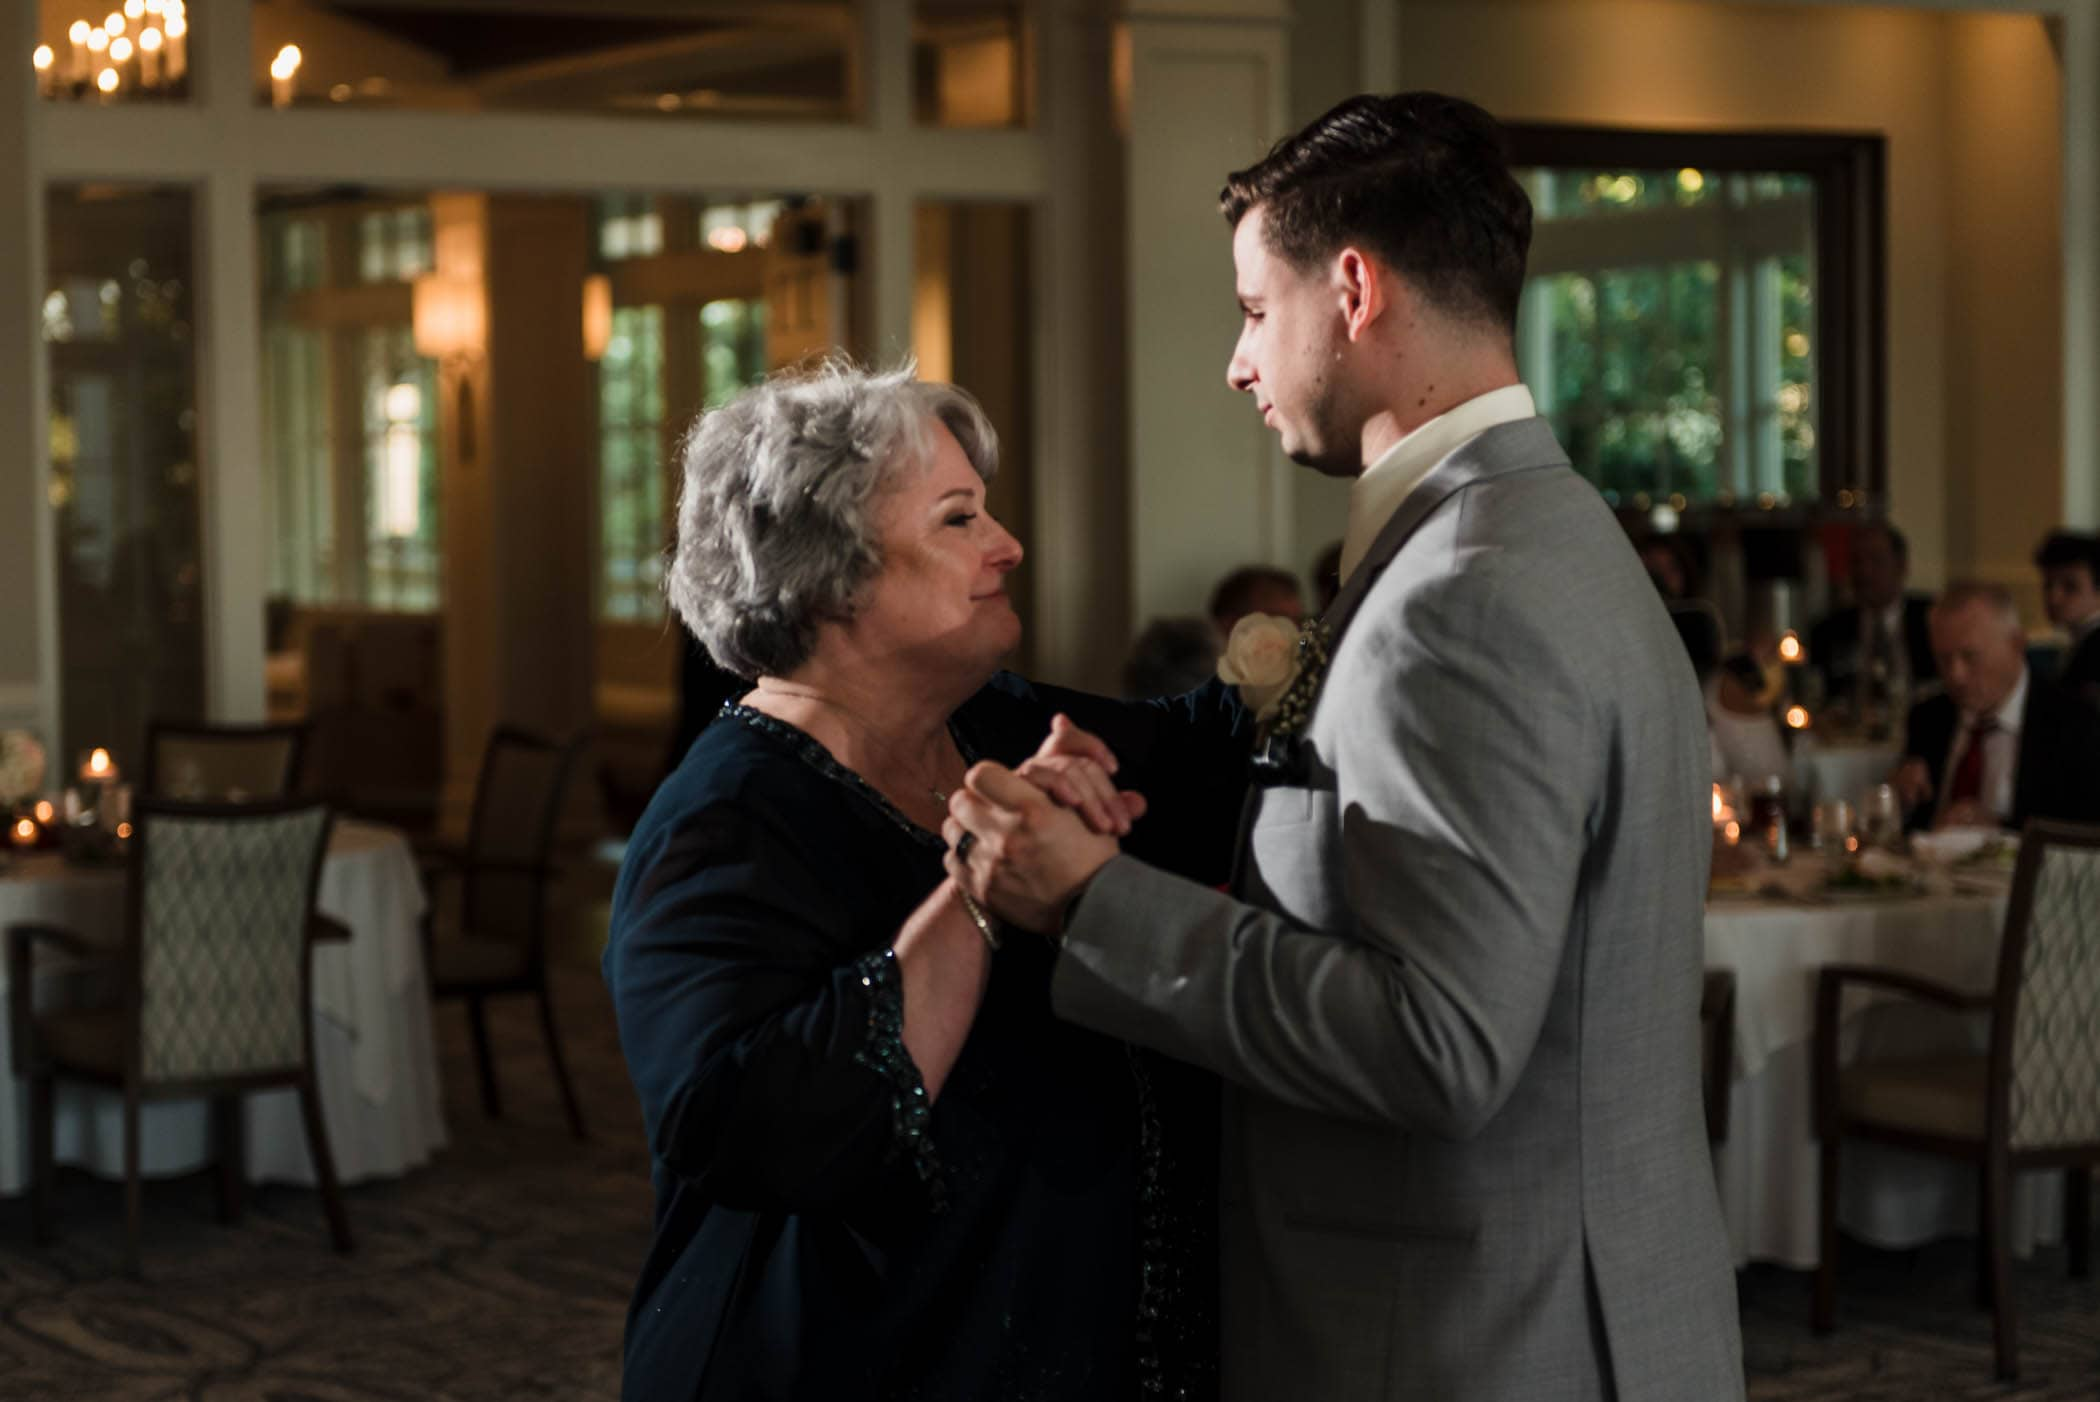 Groom and Mother of the Groom dancing Dataw Island Club House by Susan DeLoach Photography SC wedding photographers